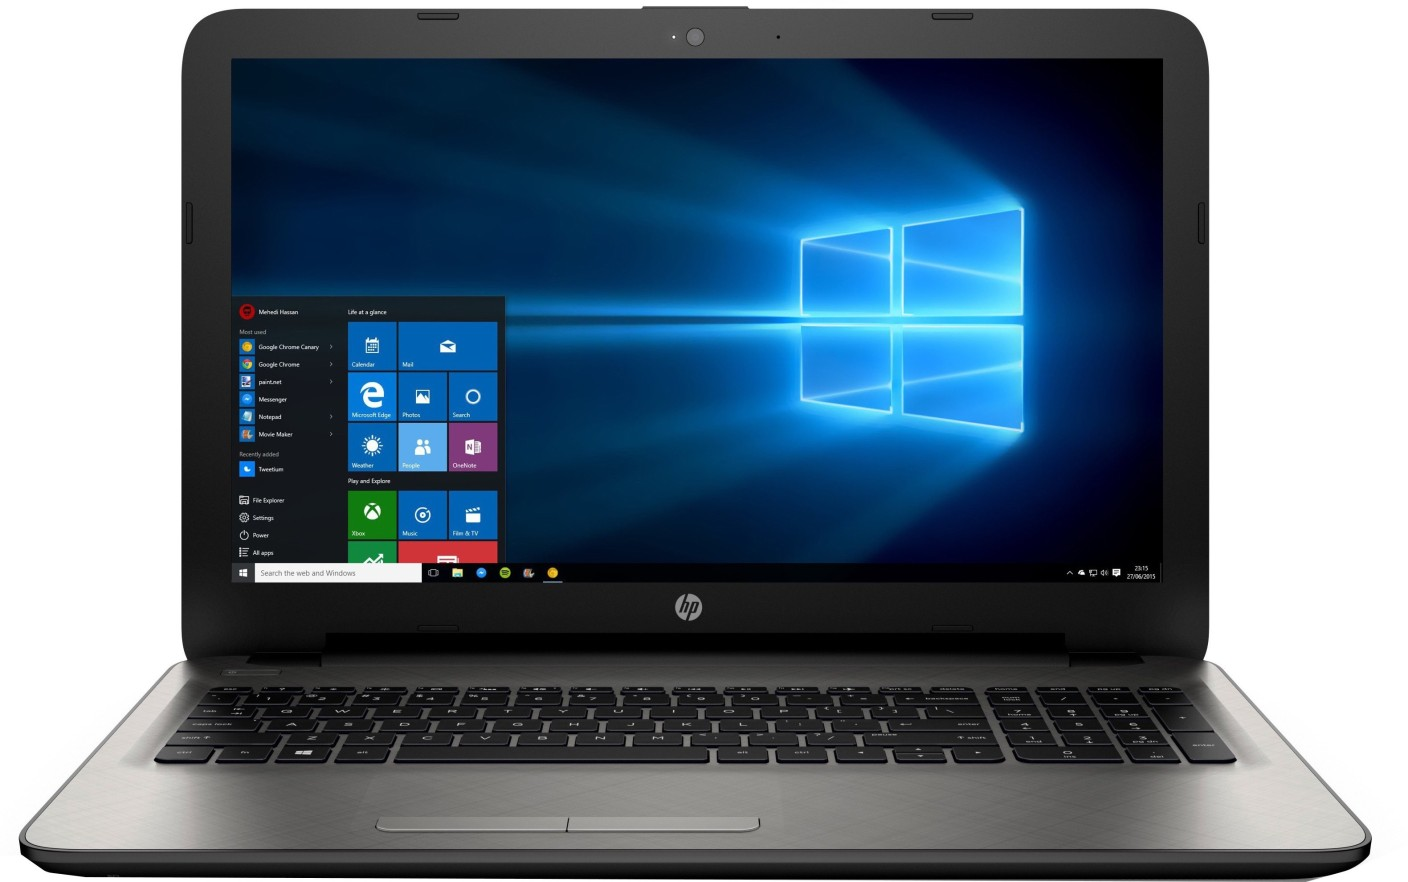 Hp notebook for sale - Facebook